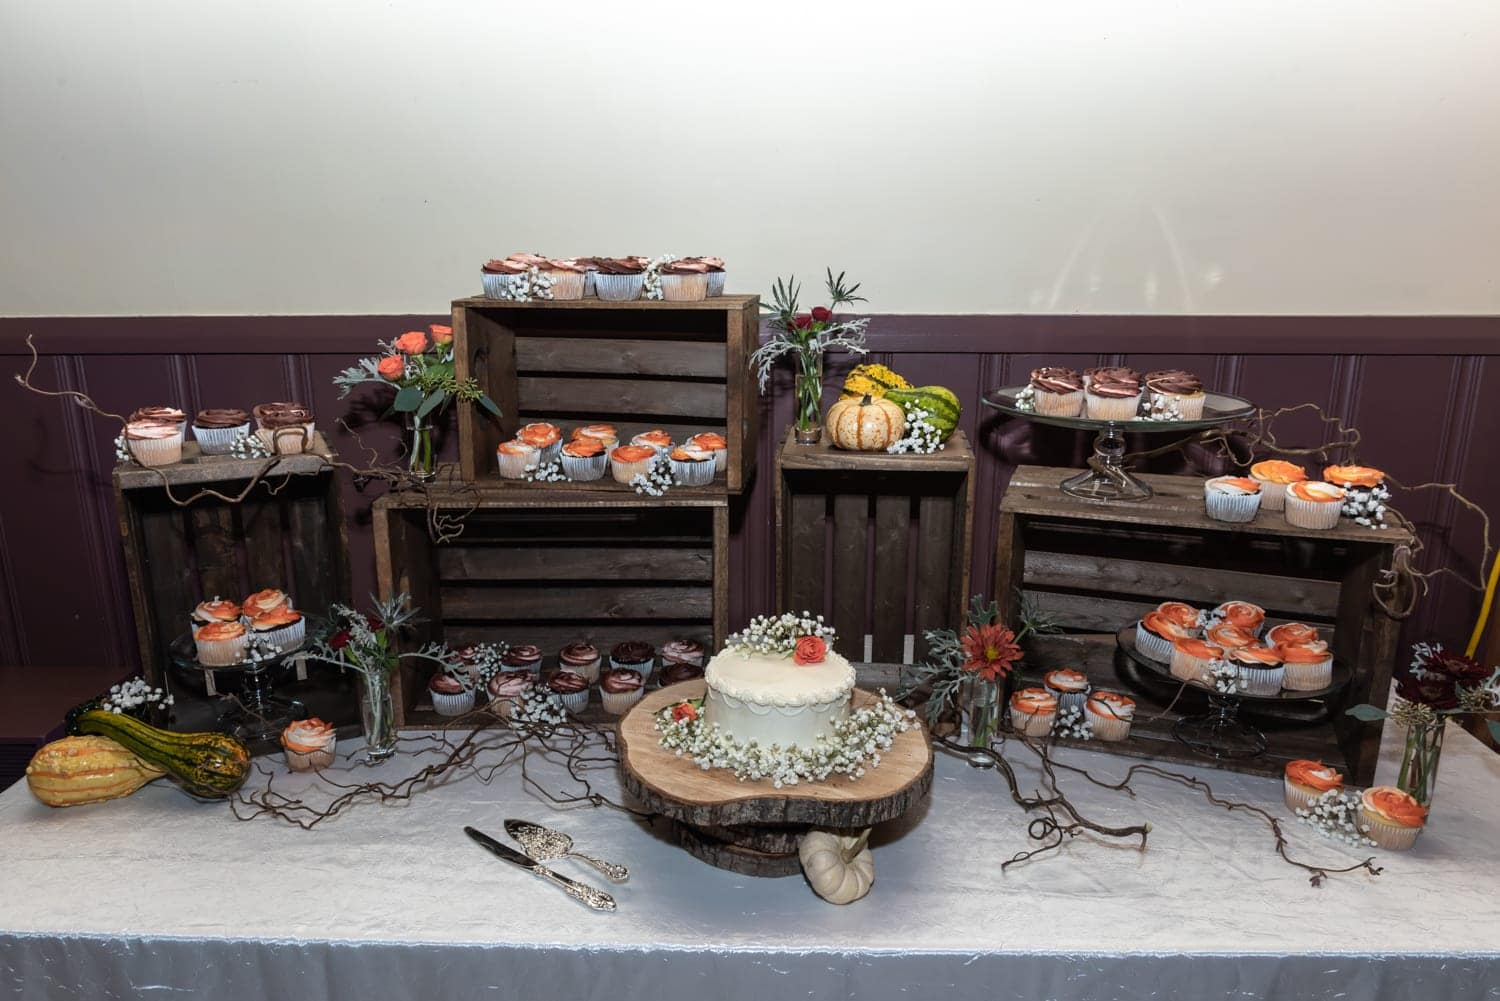 wedding cake with wedding cupcakes in a rustic wooden crate style display at Digby Pines